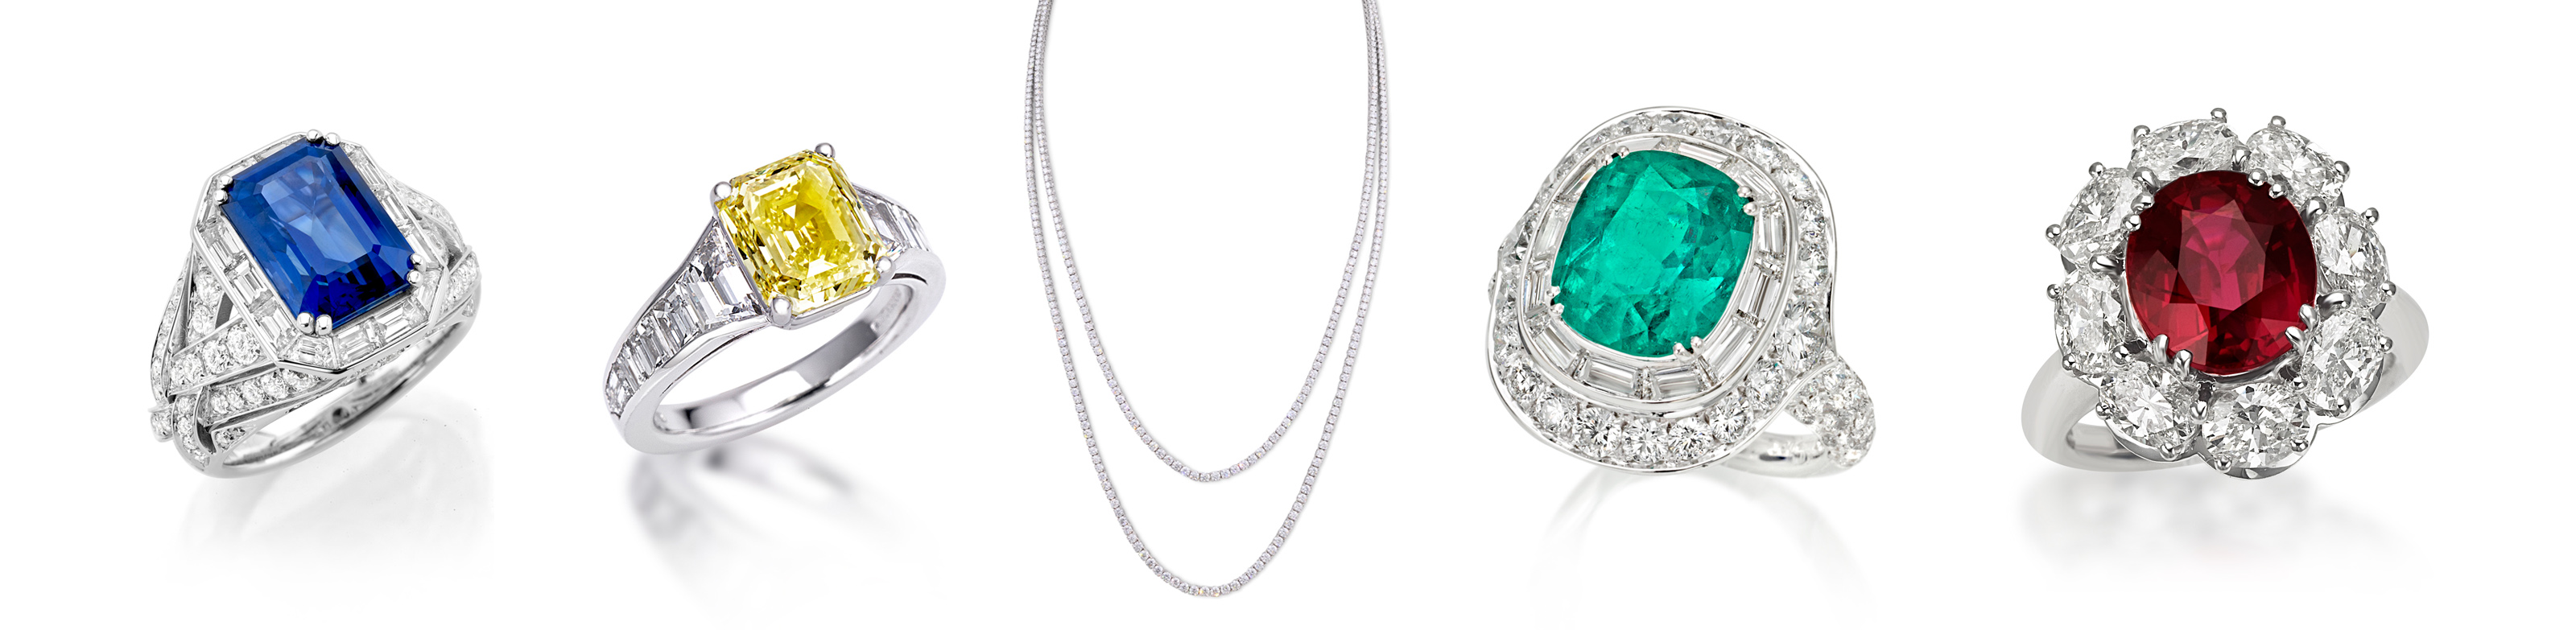 New Picchiotti Jewellery Pieces - November 2020 News article hero image